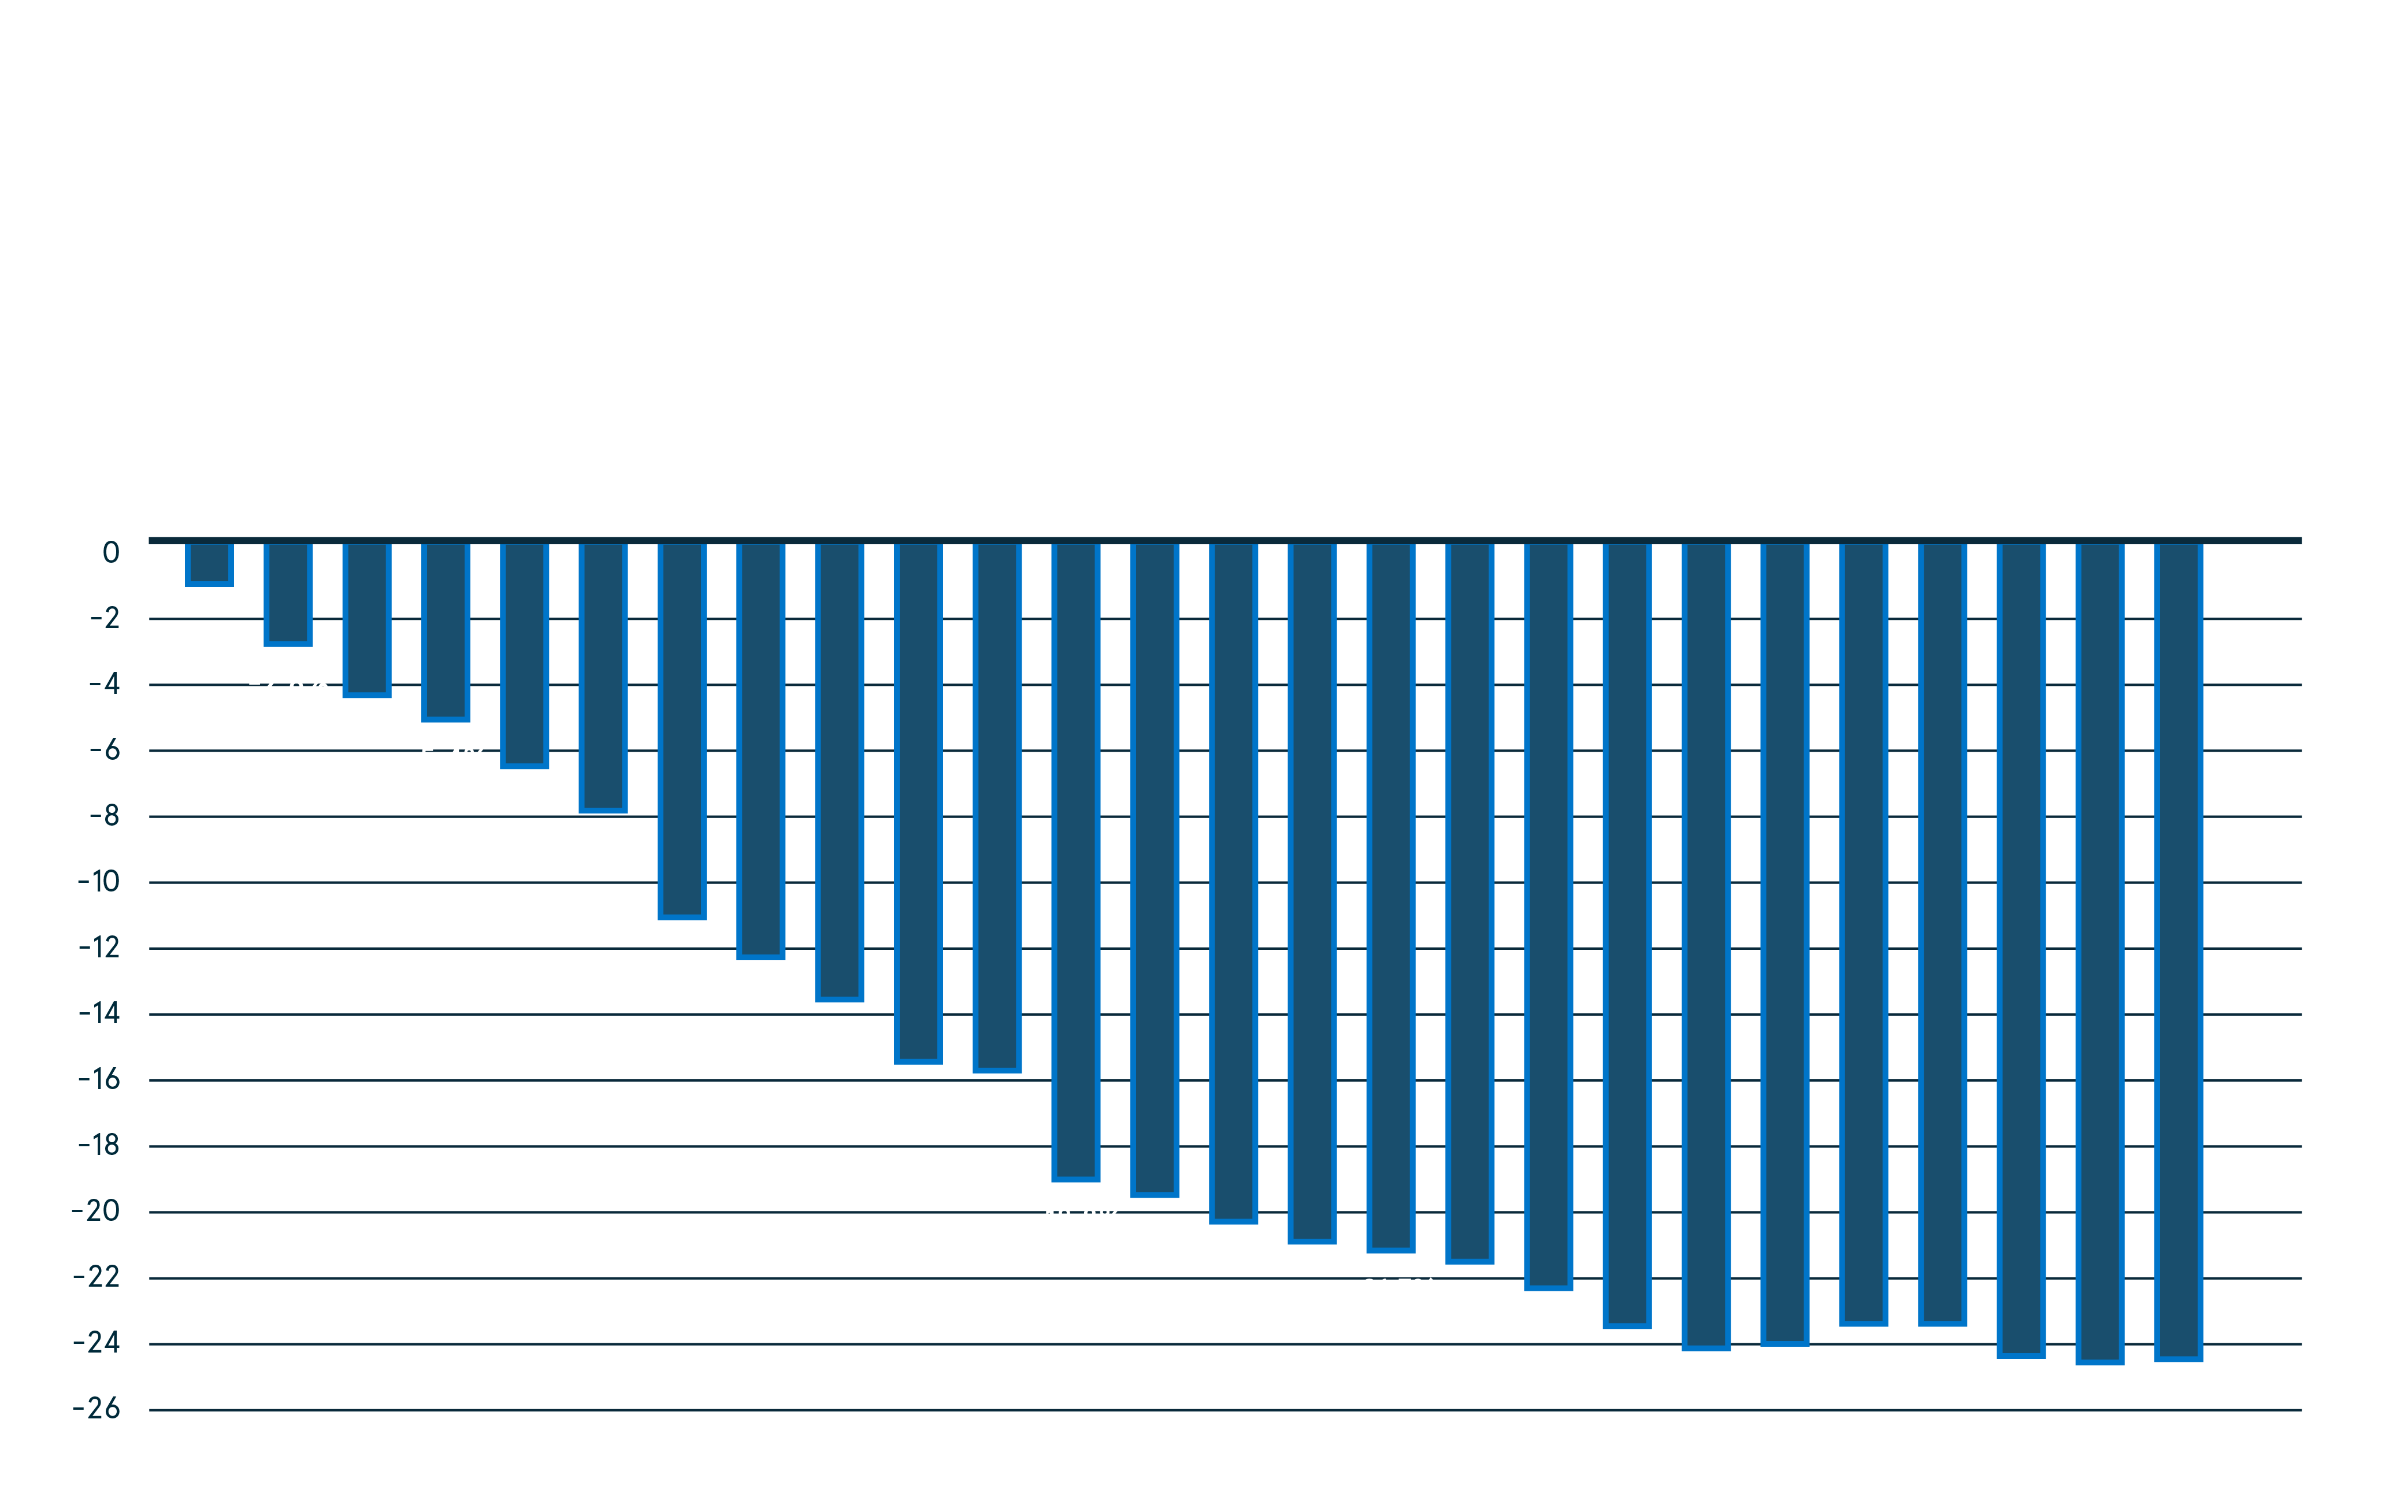 2020 Global Gambling Gross Win Forecast During the COVID19 Outbreak (US$bn)